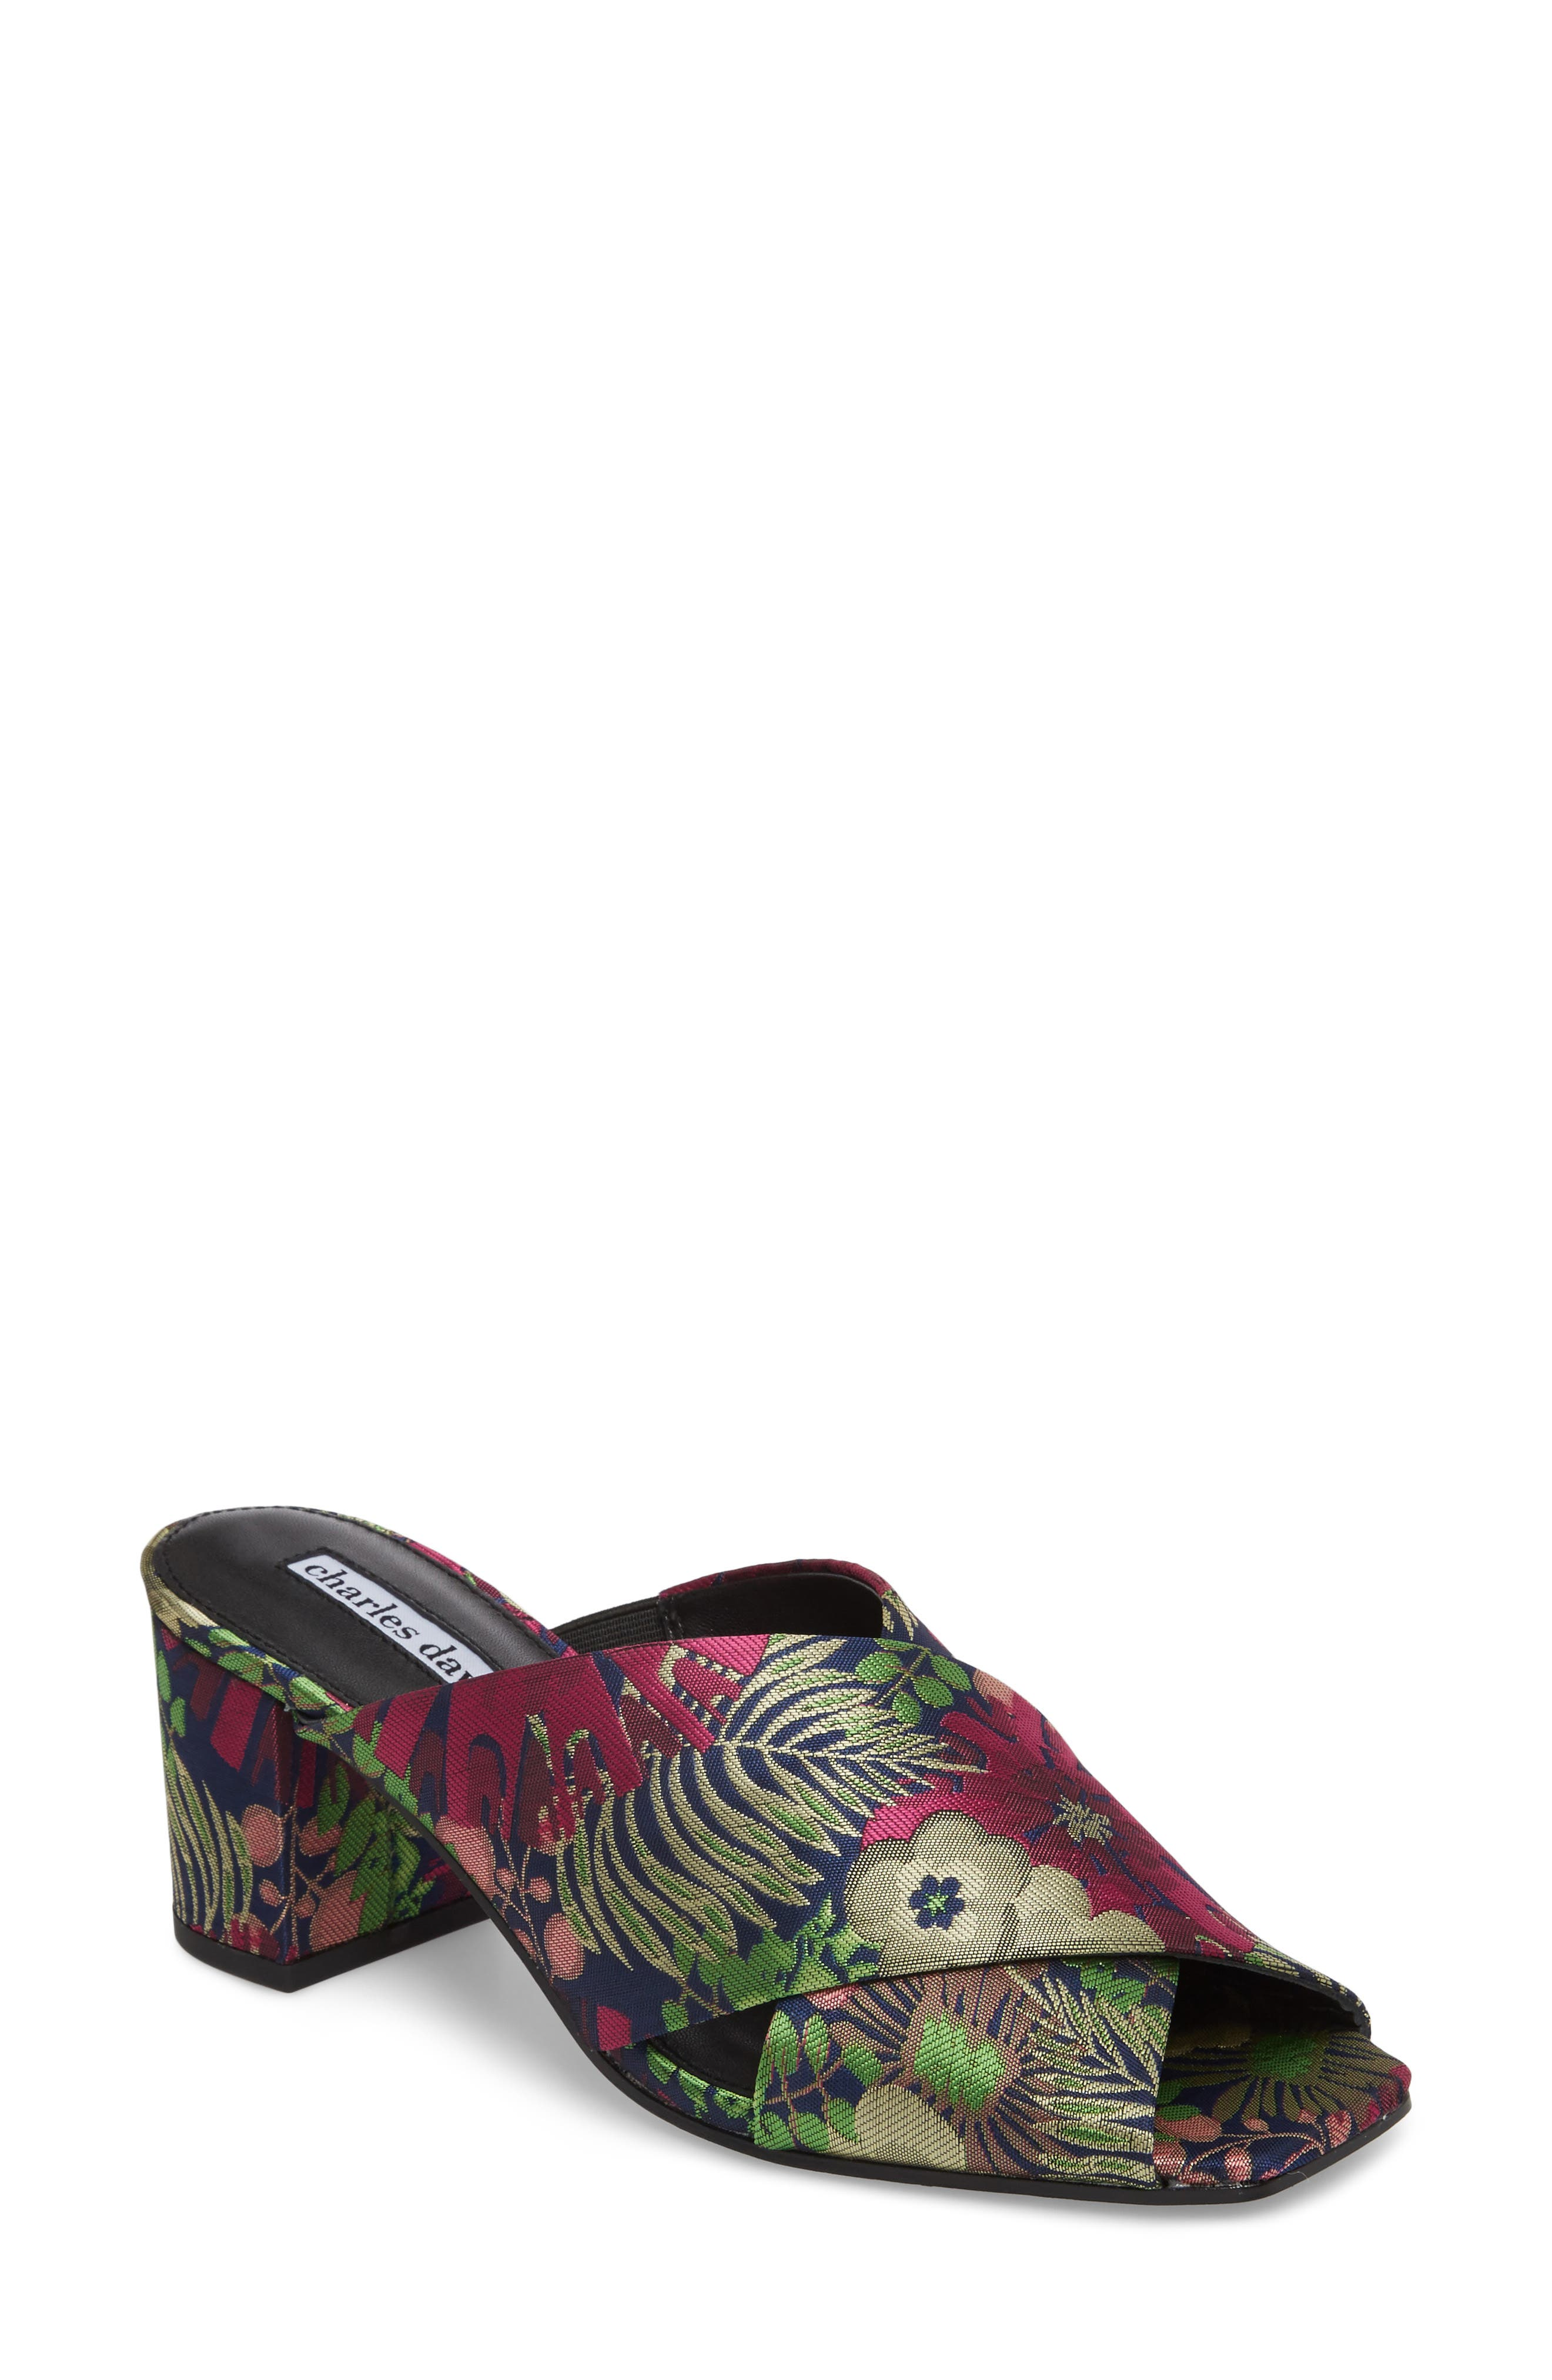 Crissaly Slide Sandal,                             Main thumbnail 1, color,                             Green Multi Floral Fabric